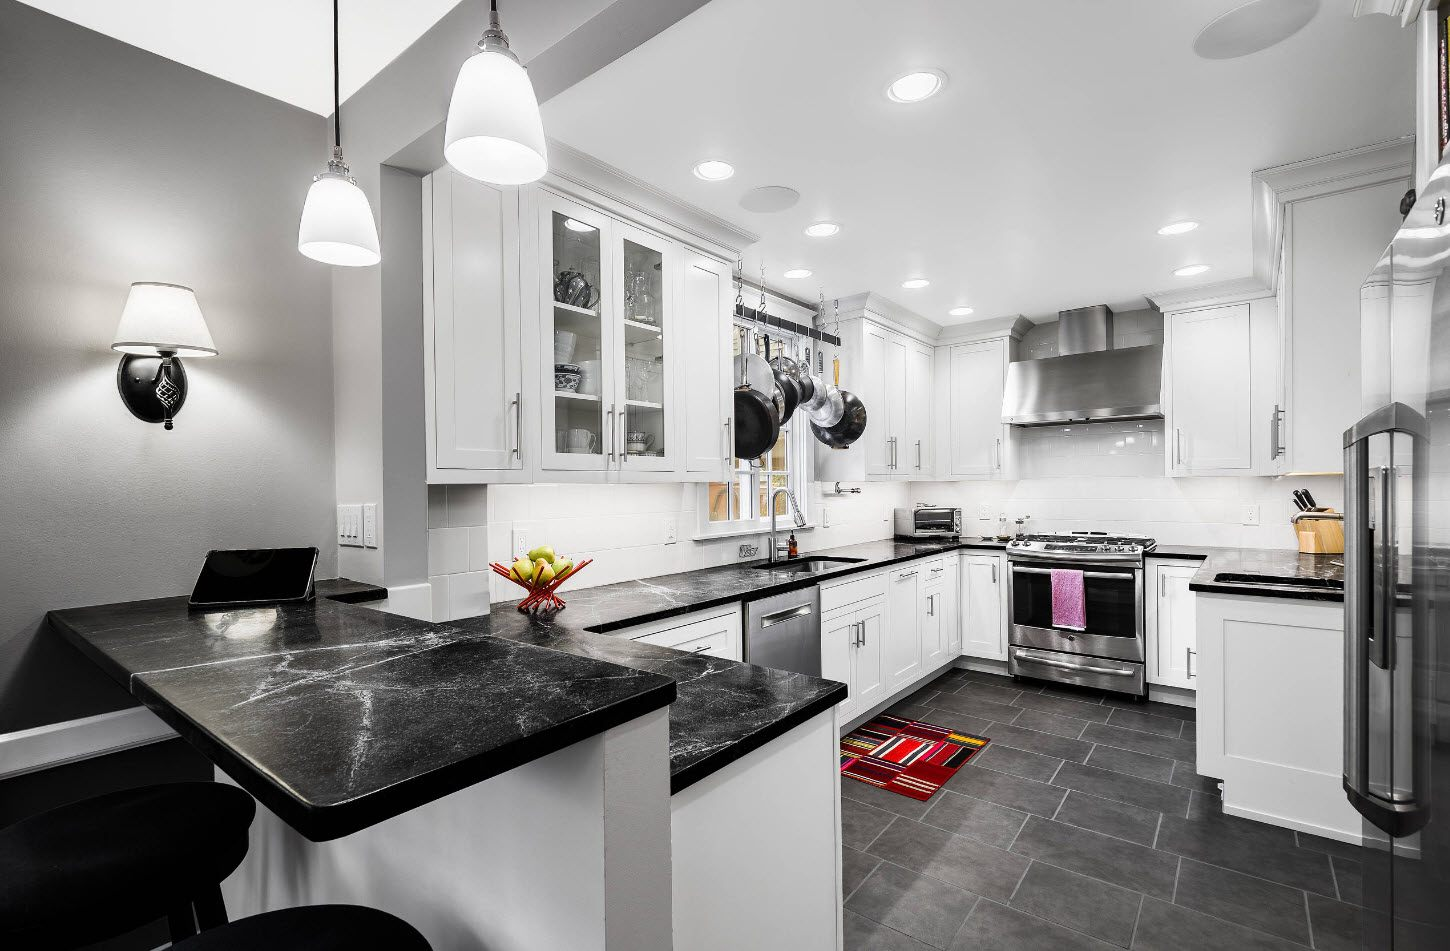 White classic large kitchen with dark tiled floor